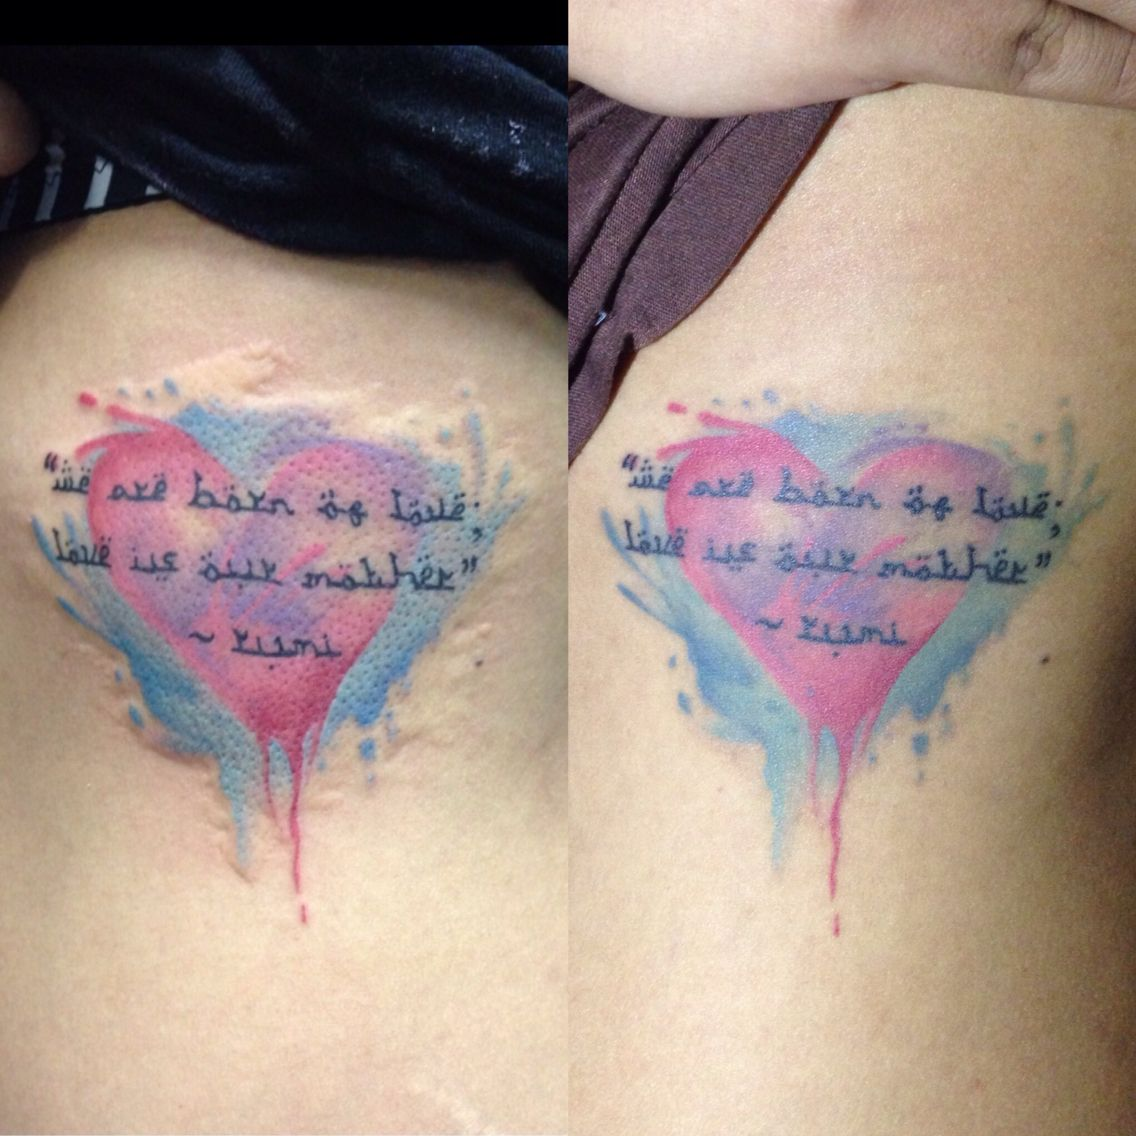 Before And After Healing Tattoos Tattoo Letteringtattoo Quotes